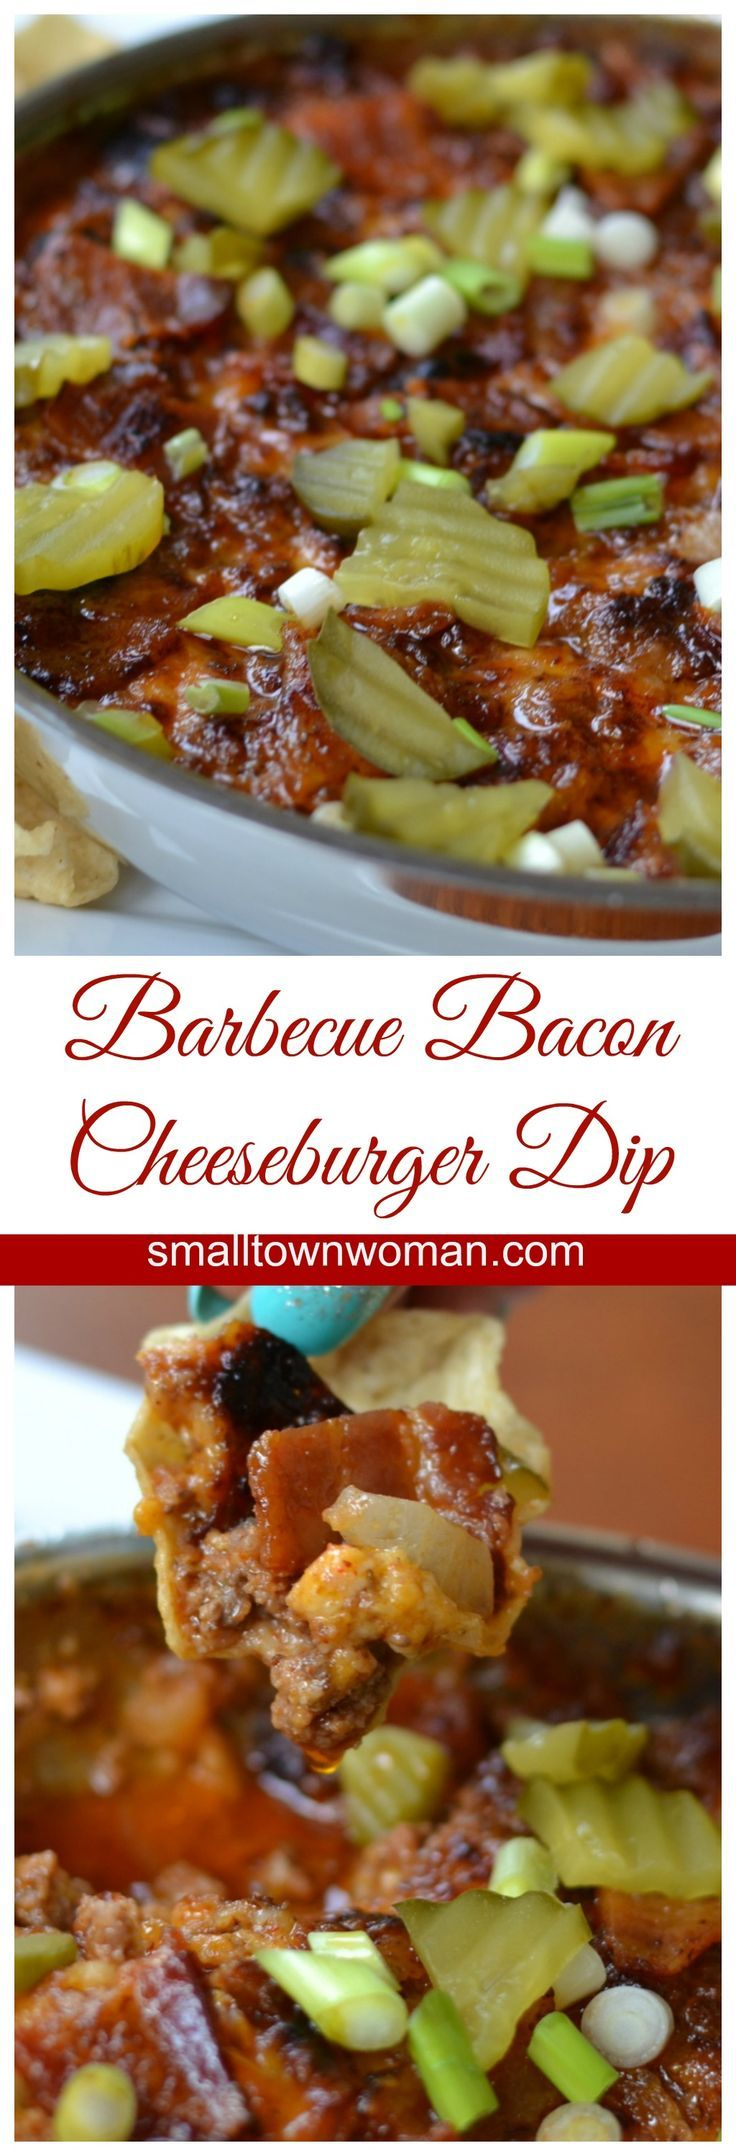 This Barbecue Bacon Cheeseburger Dip is so good it should come with an intervention program.